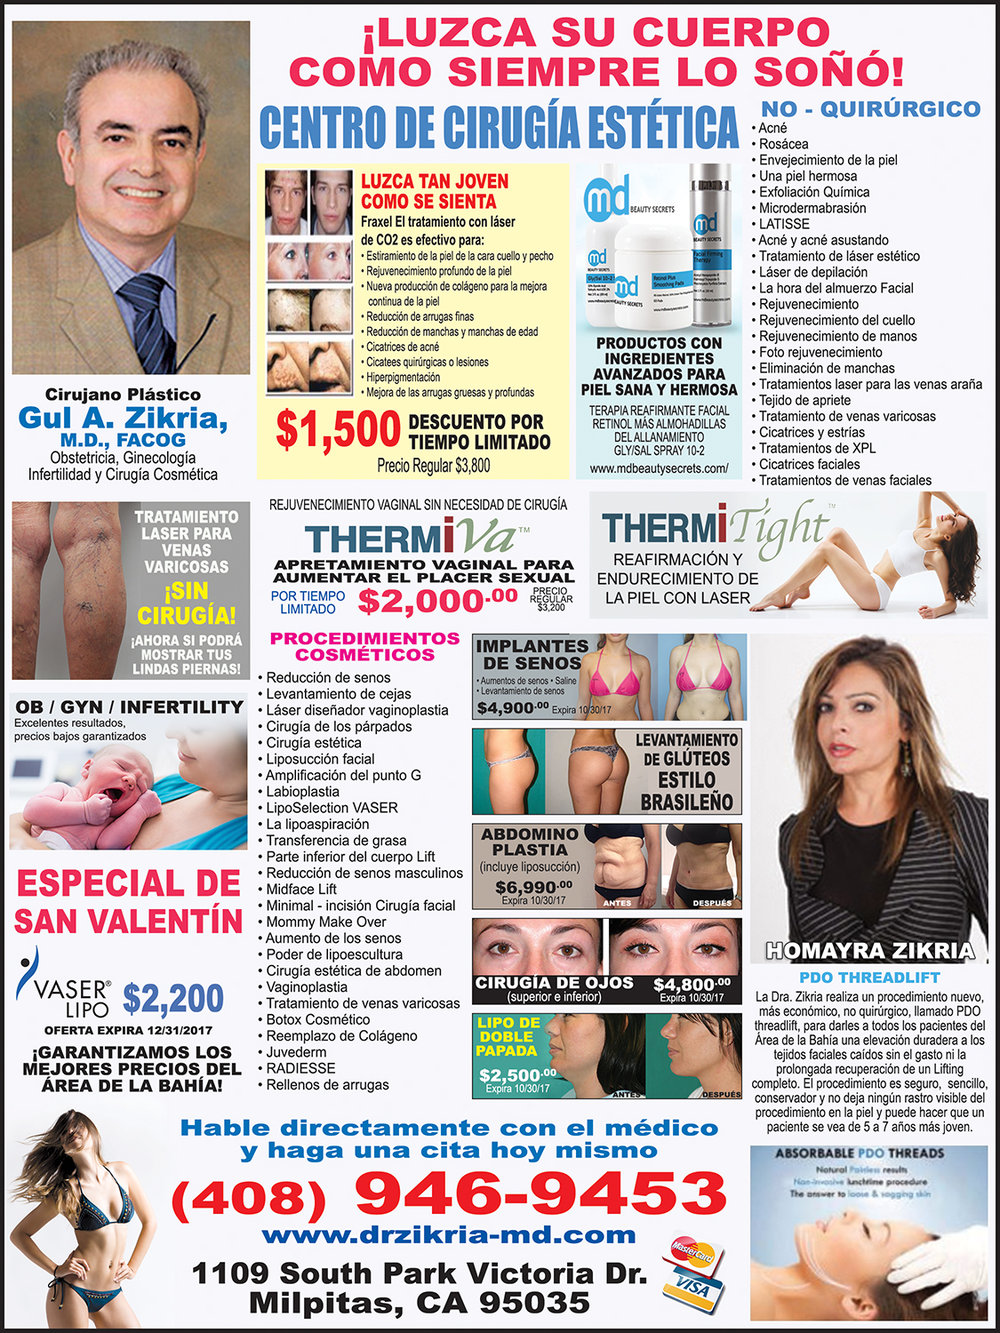 Cosmetic Surgery Center - Gul A Zikria MD 1 Pag -  FEBRERO 2018.jpg